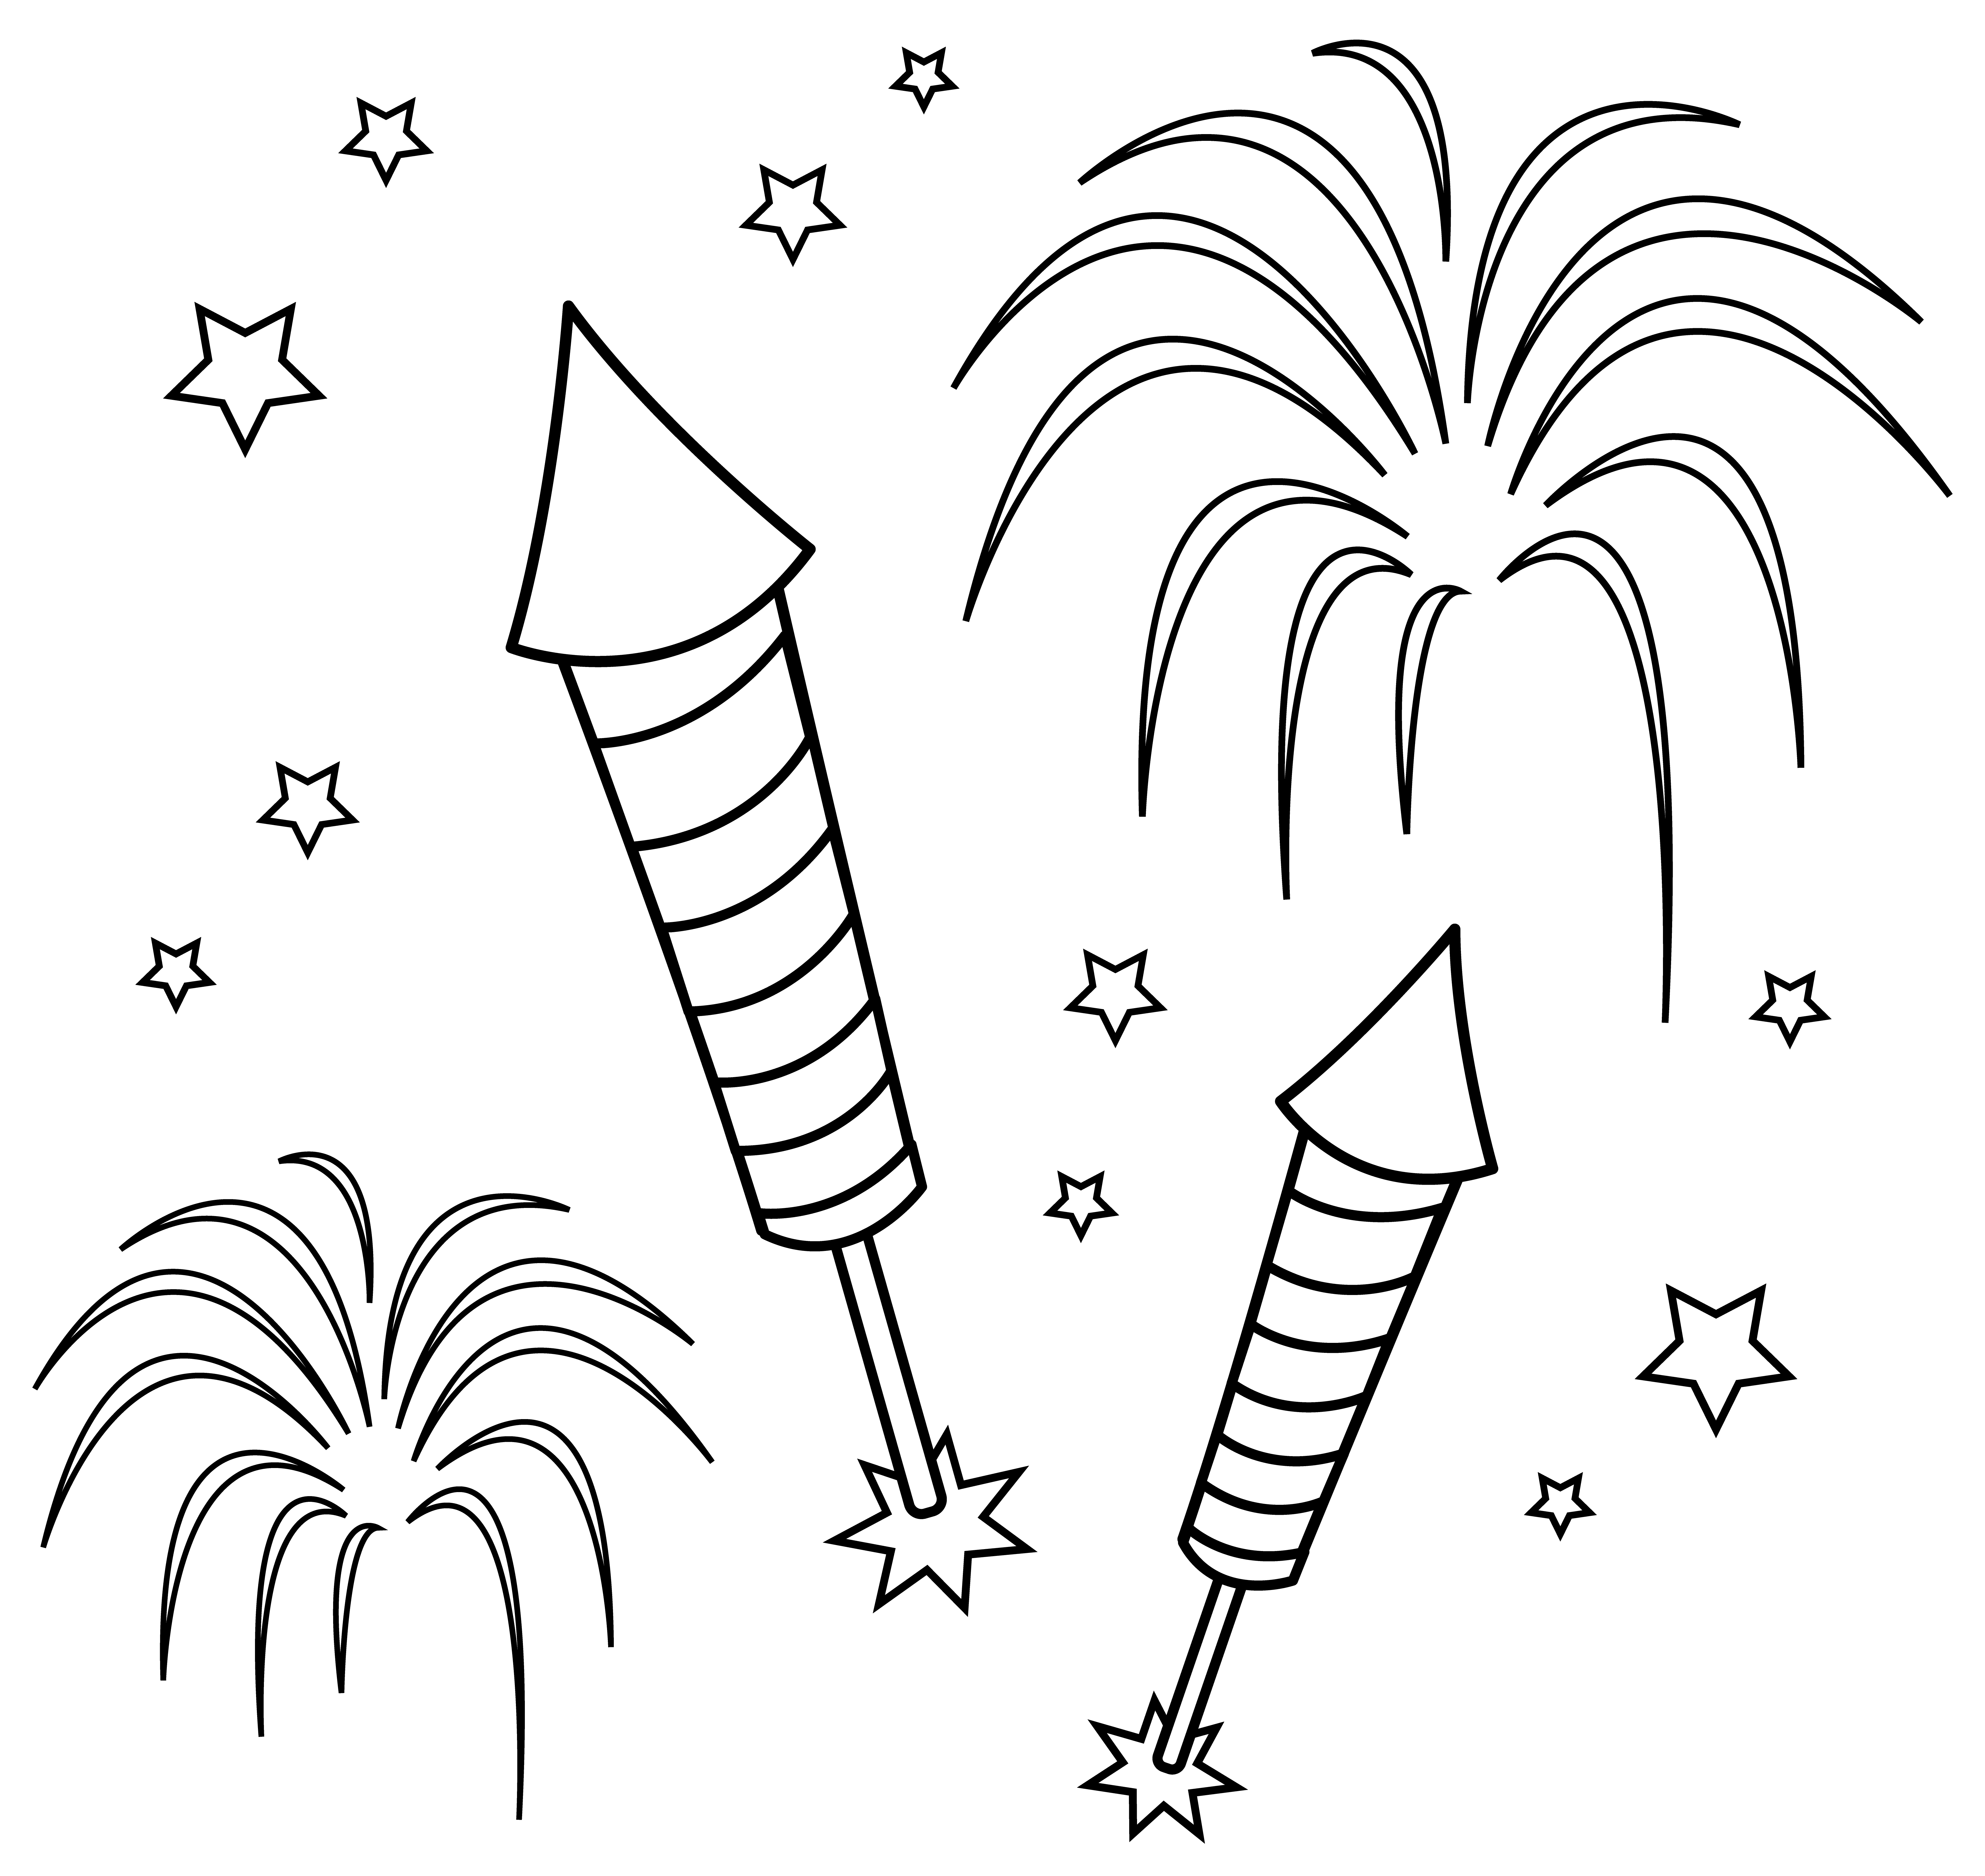 coloring page of fireworks coloring activity pages fireworks coloring page page fireworks coloring of